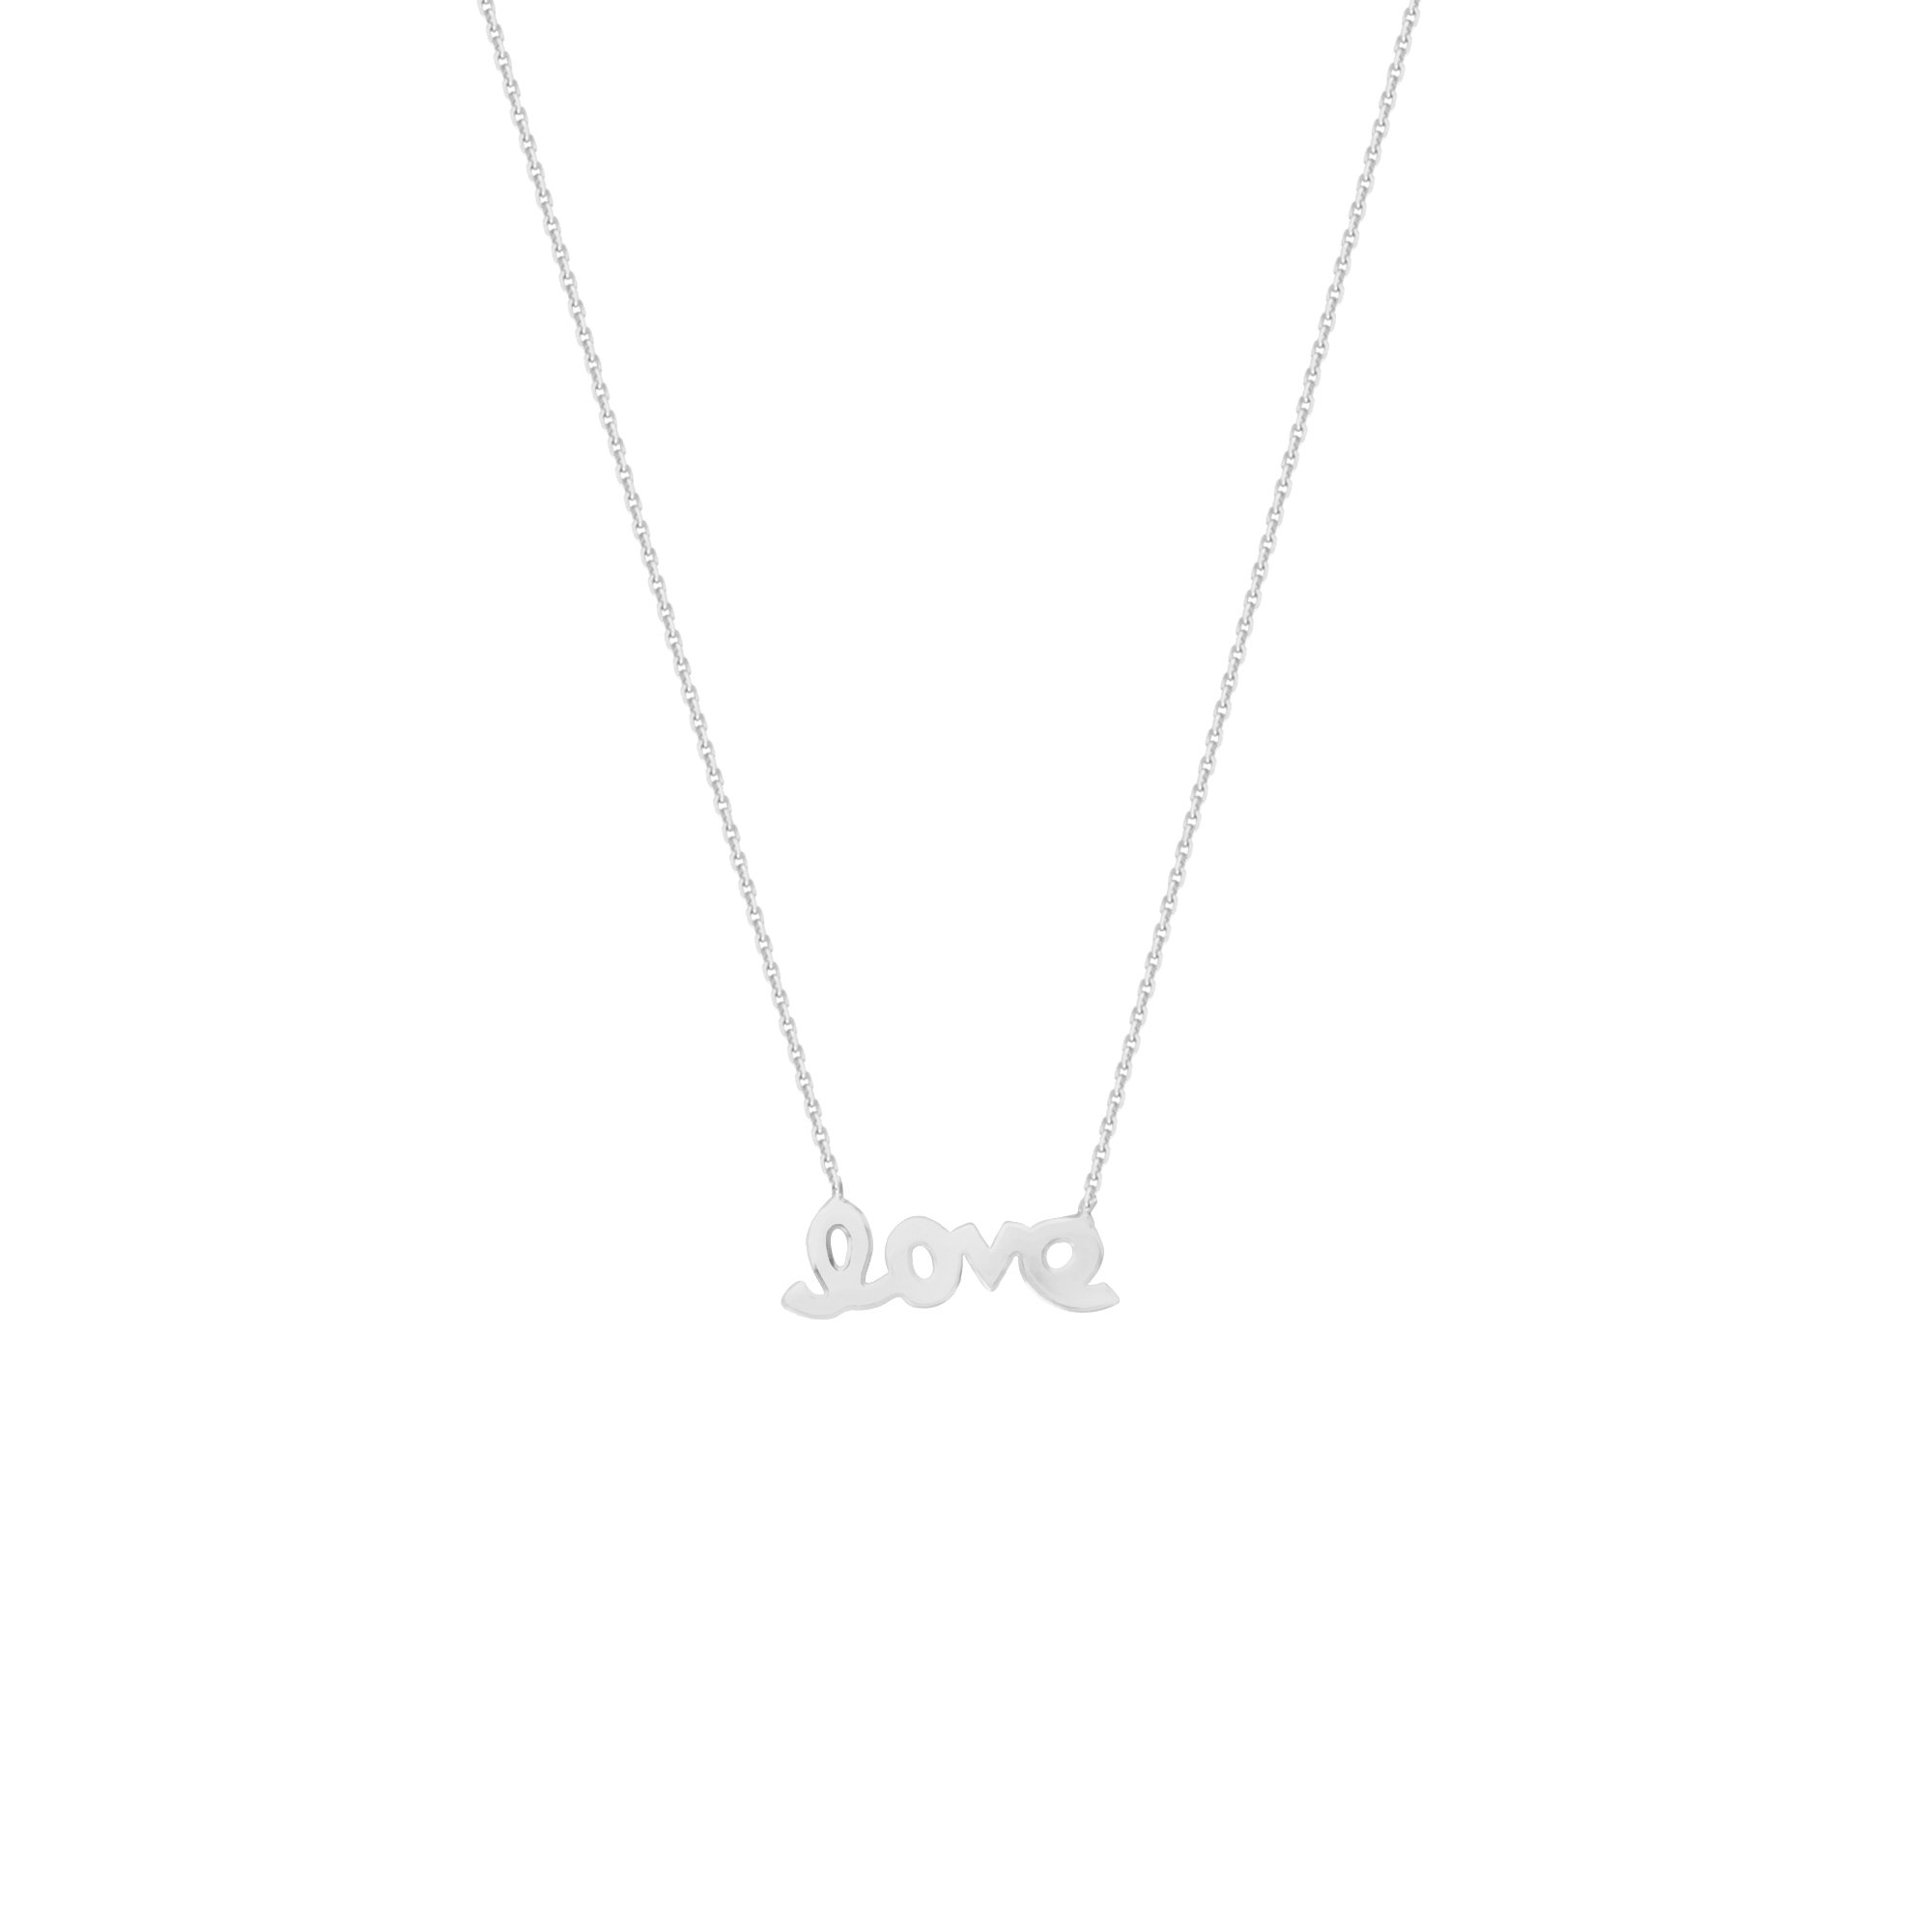 LOVE NECKLACE, 14KT GOLD NECKLACE 18'' INCHES